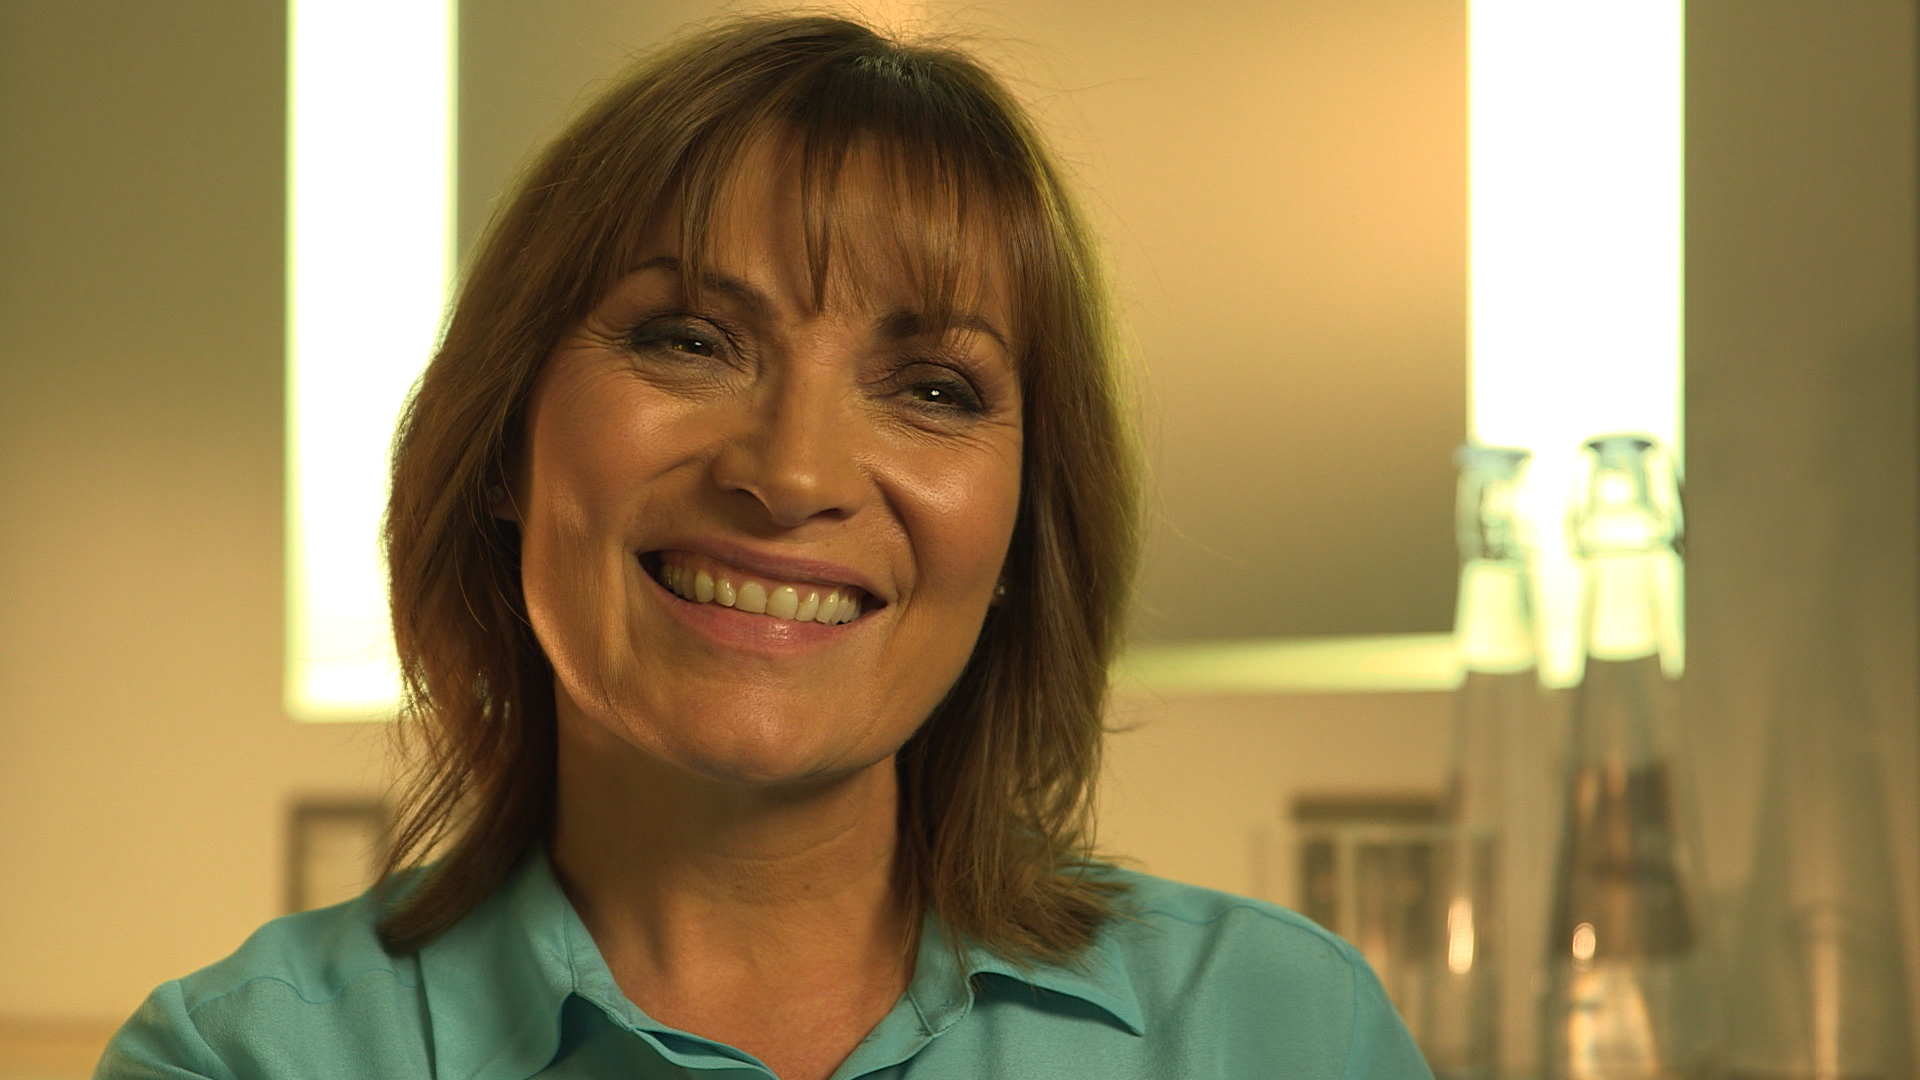 Lorraine Kelly reunited with 'amazing' NHS staff who saved her life